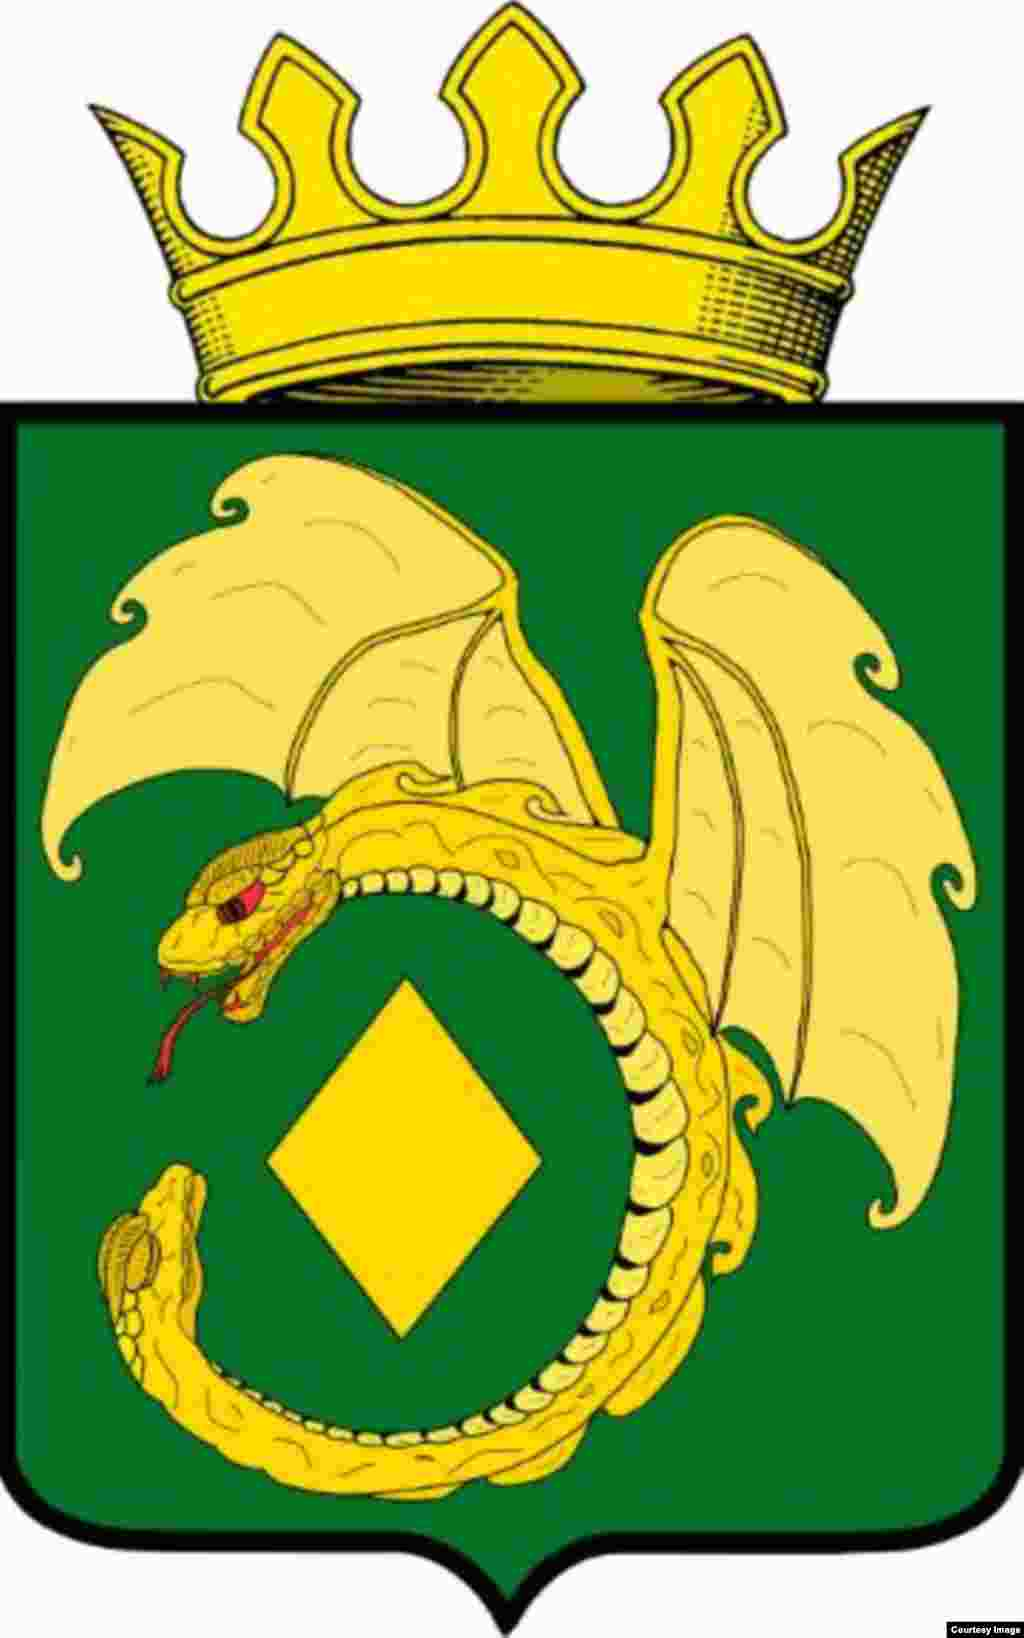 Speaking of folklore, the coat of arms for the district of Mogocha shows the Dyabdar, a giant winged snake that is part of the mythology of the Evenk people. Mogocha is 80 kilometers north of the Chinese border. Evenks are present in China, Russia, and Mongolia.